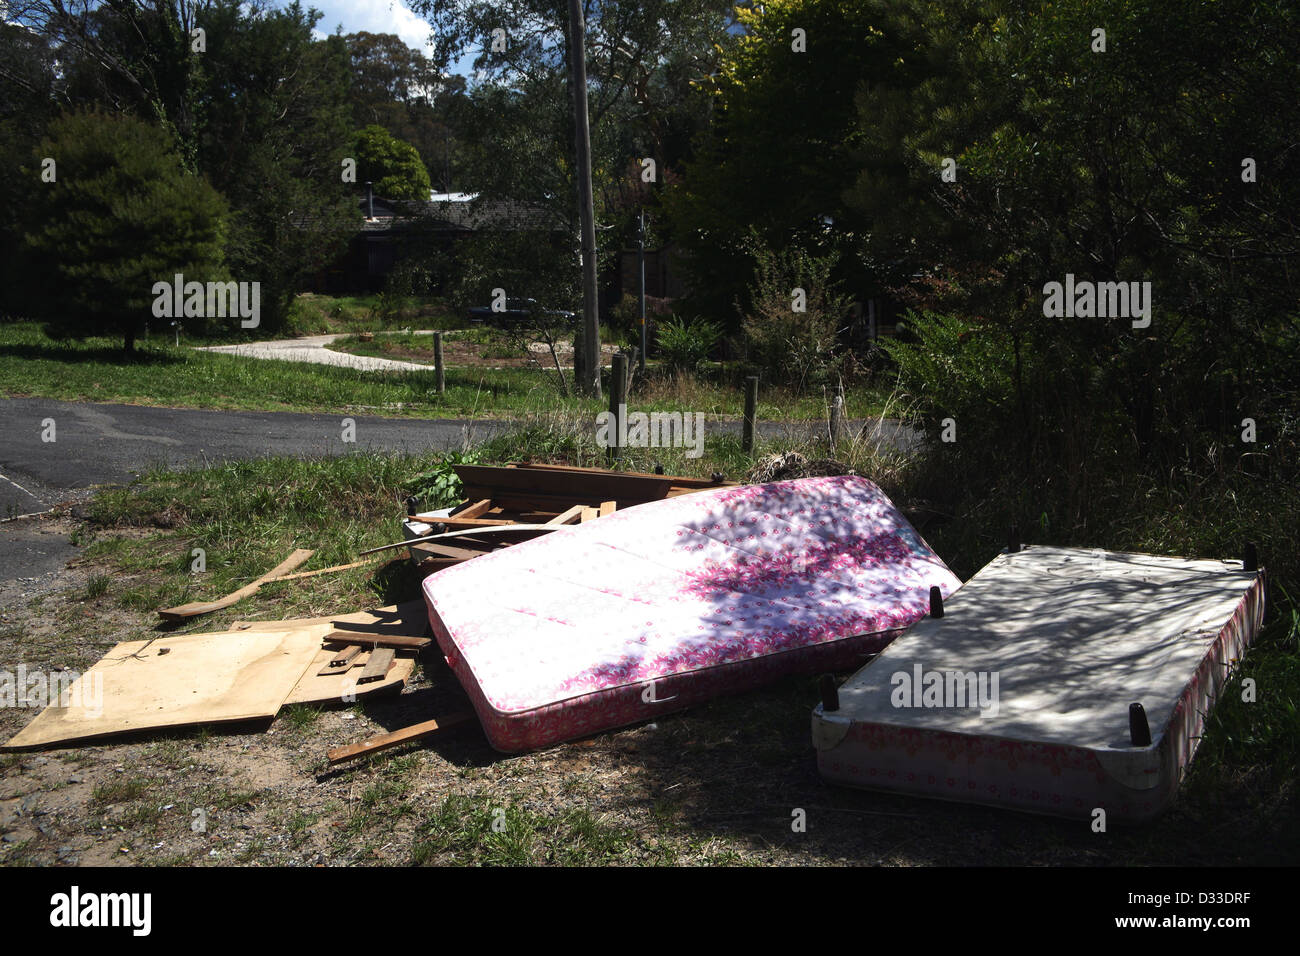 Old mattresses by the road waste NSW - Stock Image